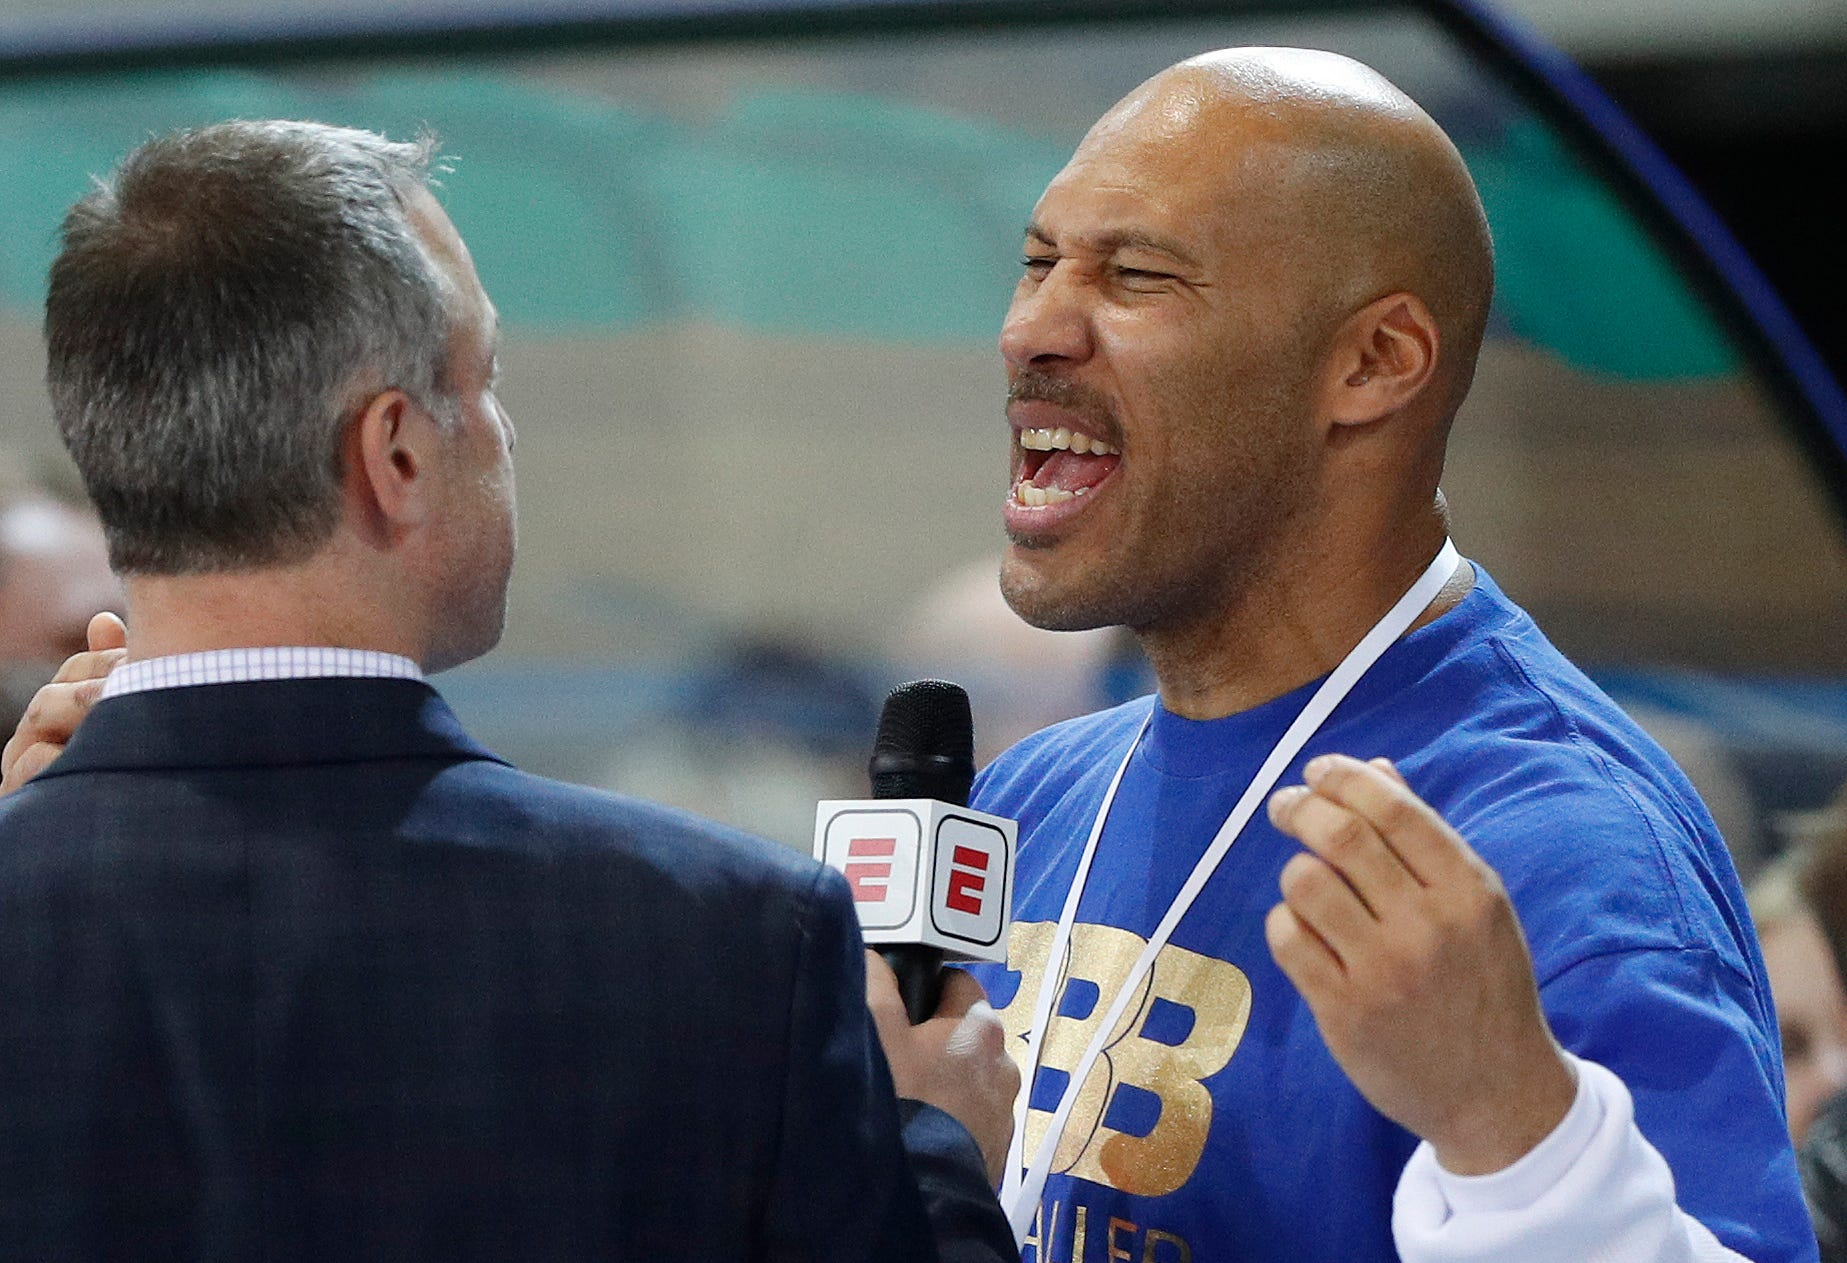 LaVar Ball guarantees Lakers will never win another title after Lonzo included in Anthony Davis trade